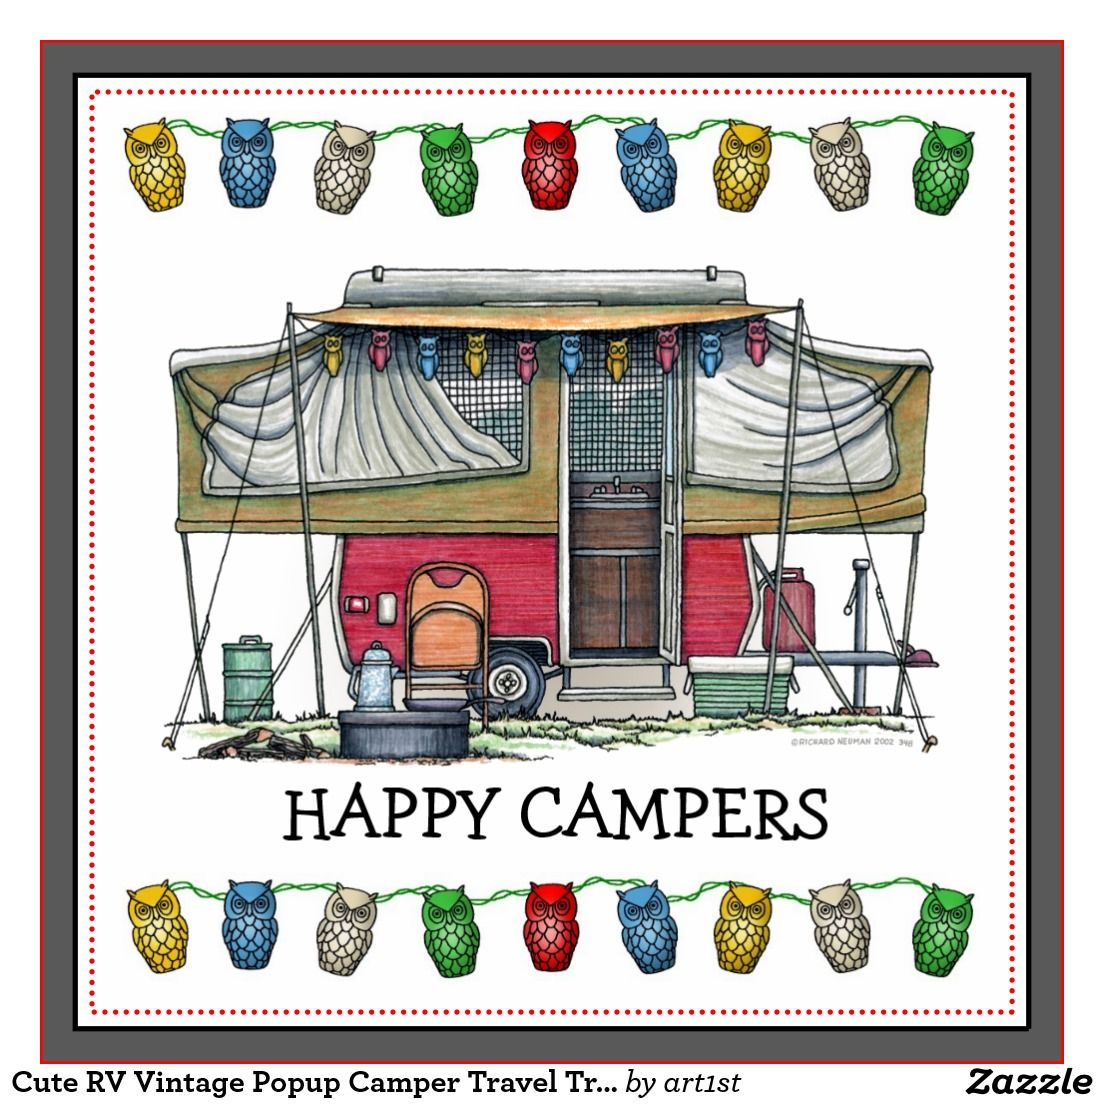 Camping camper. With pop up clip